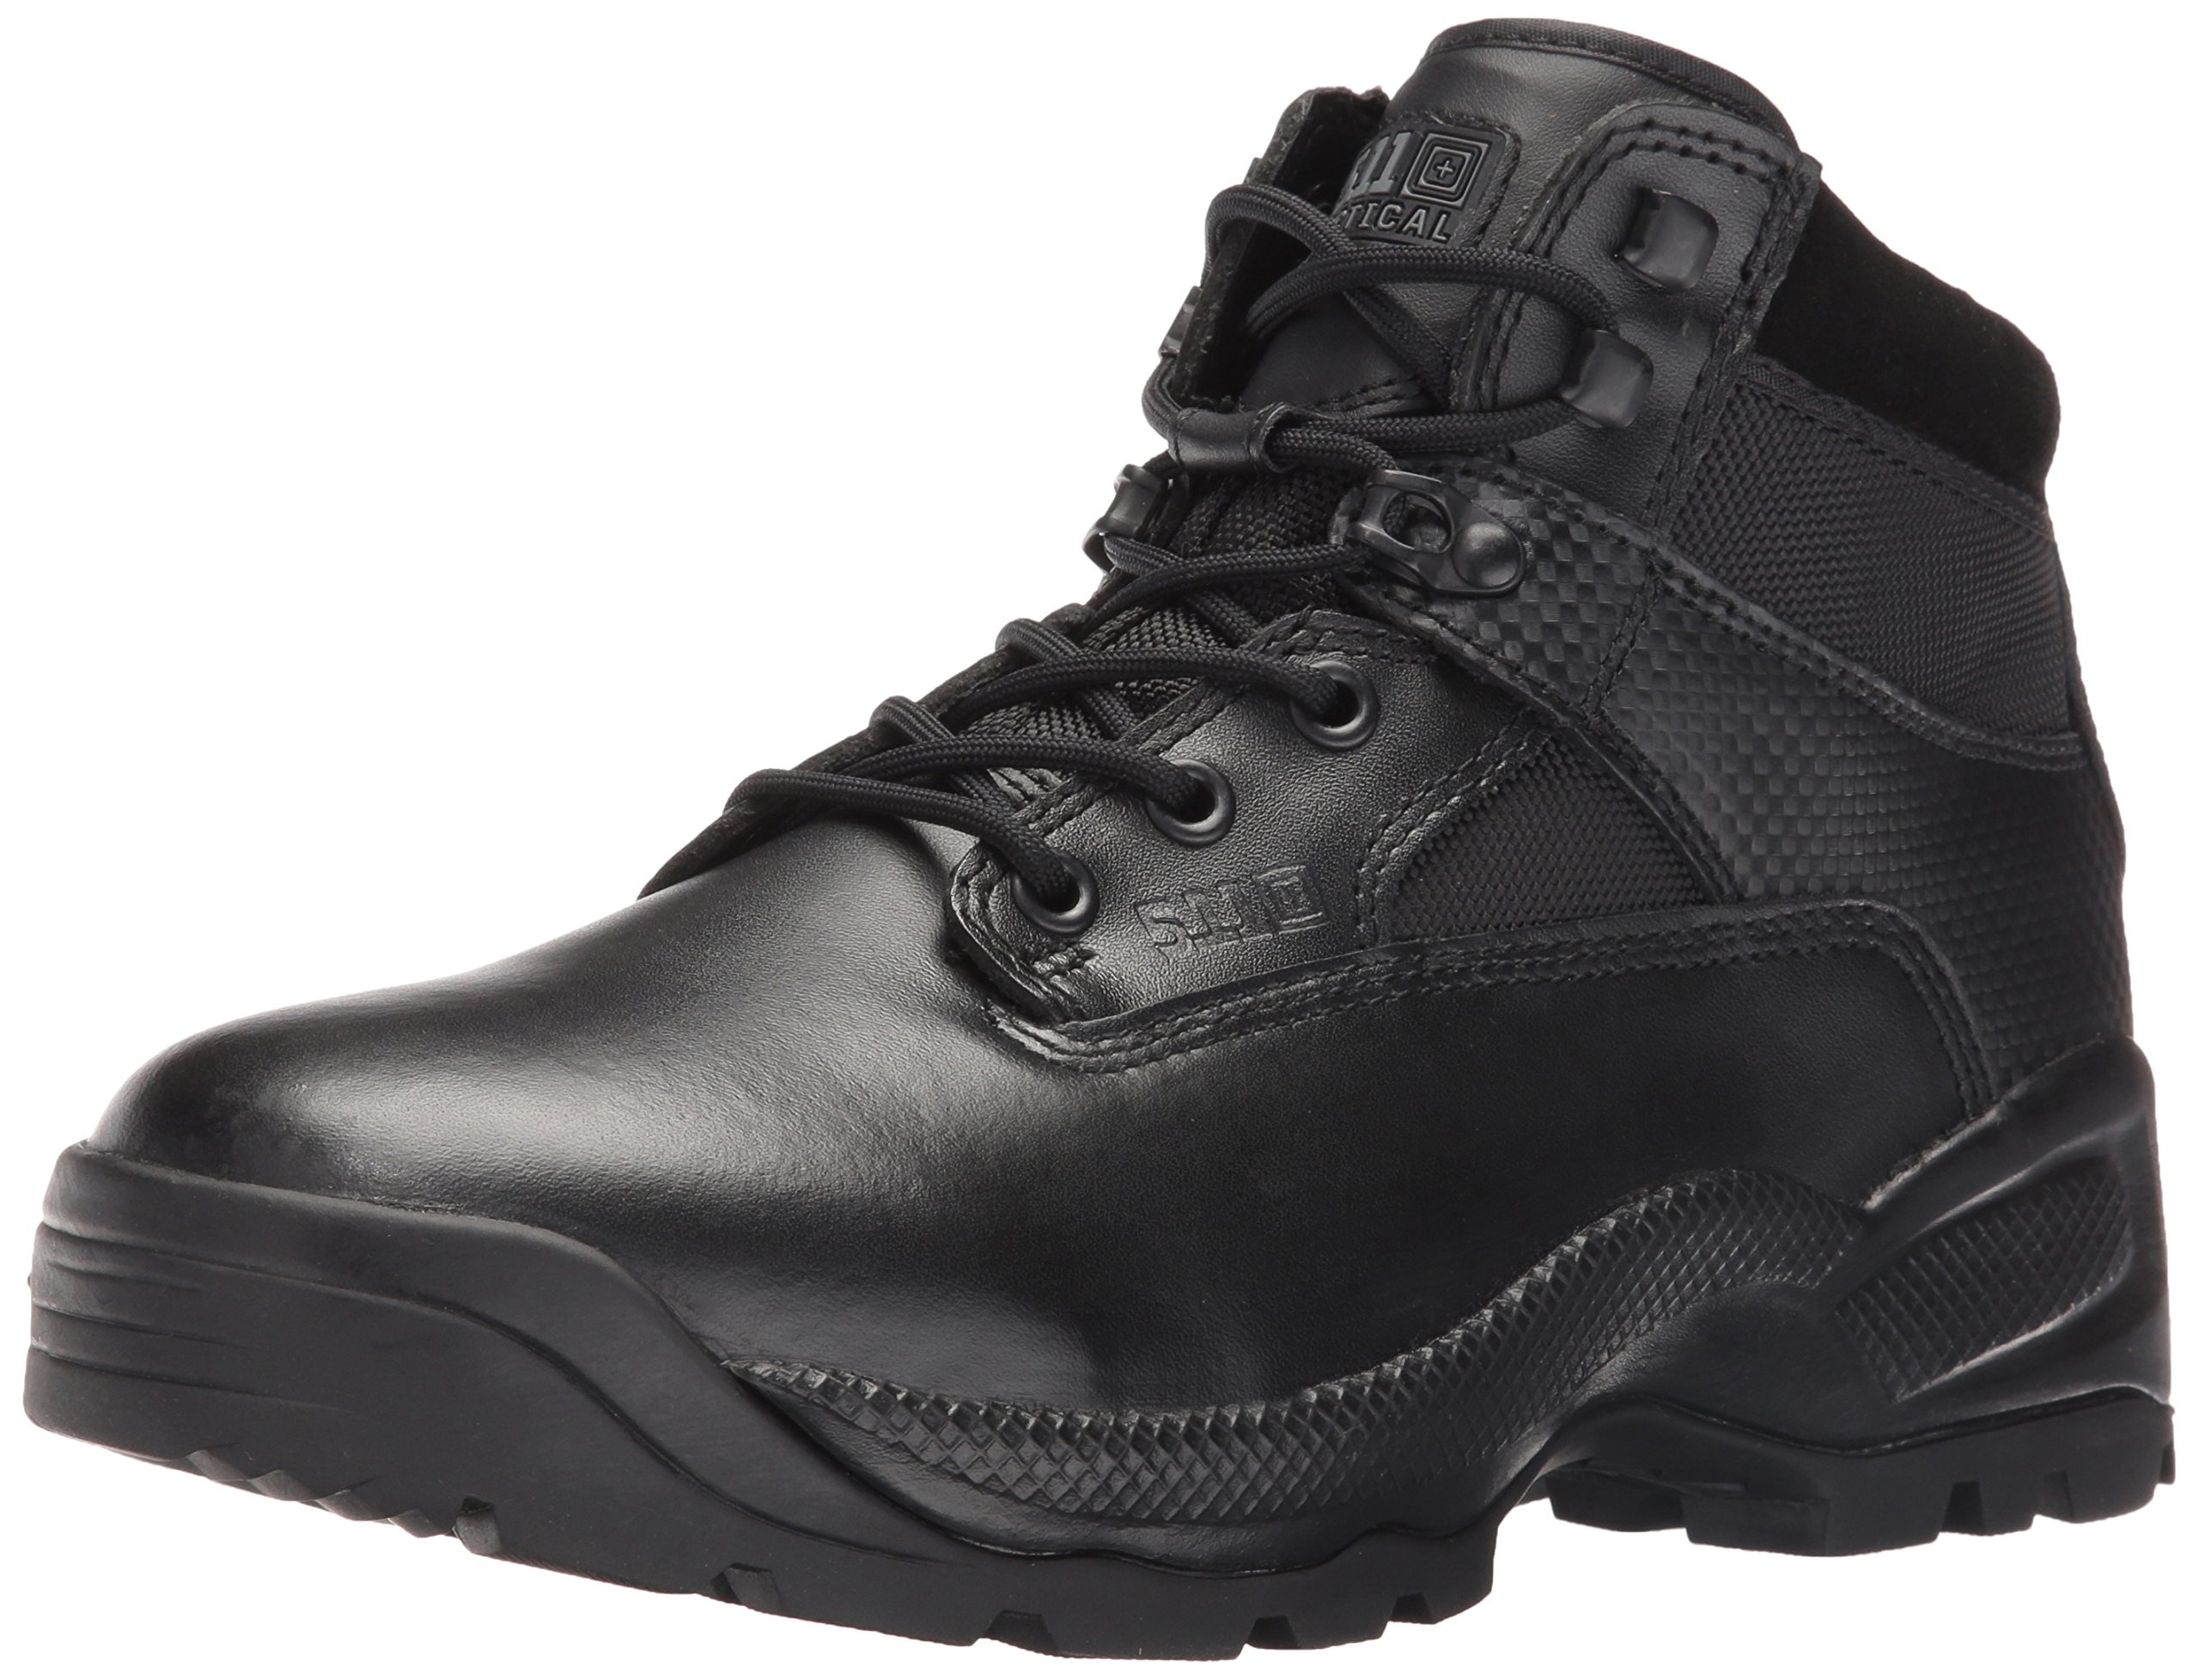 5.11 Tactical A.T.A.C. 6'' Side Zip Boot, Black, 12 (R)